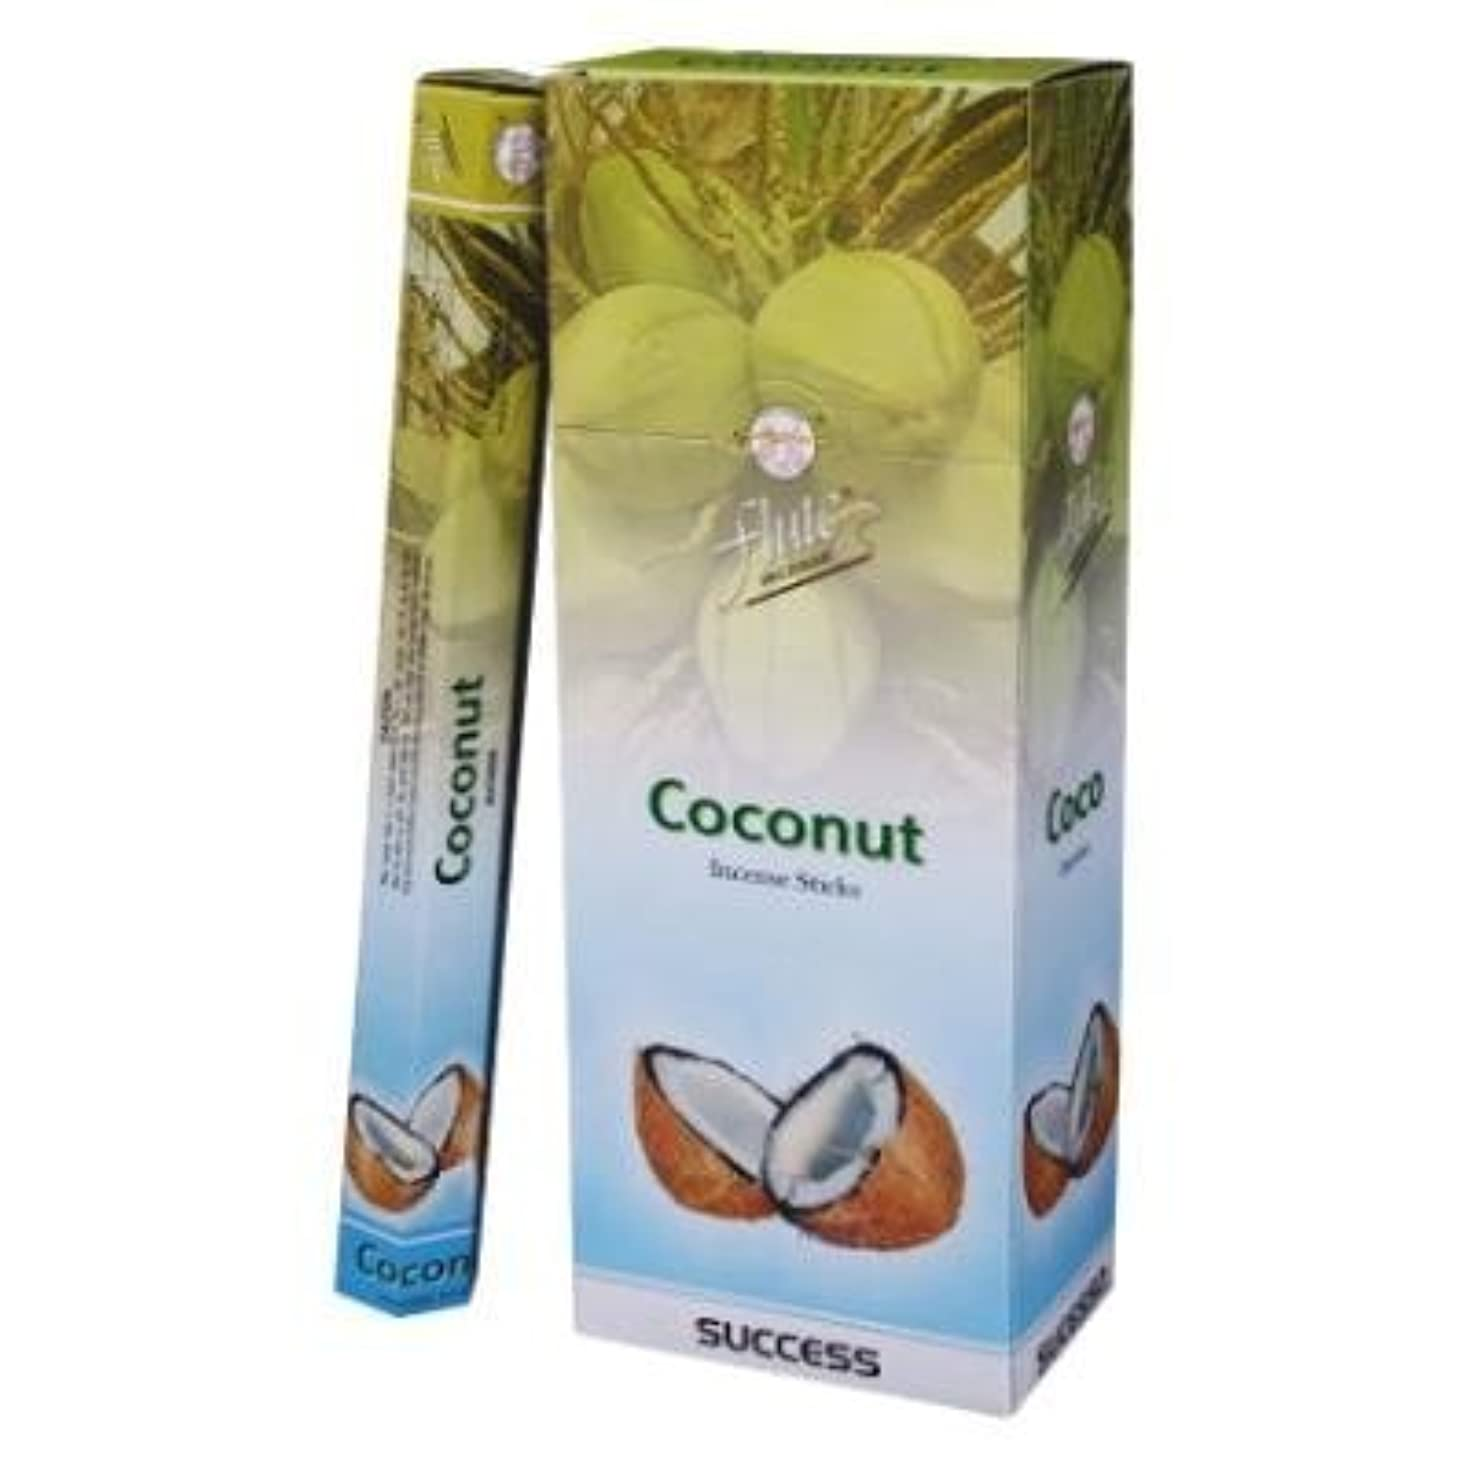 徐々に等価ほとんどないFlute Coconut Hex Incense Sticks - 20 Sticks(Single Pack) by Flute Incense [並行輸入品]